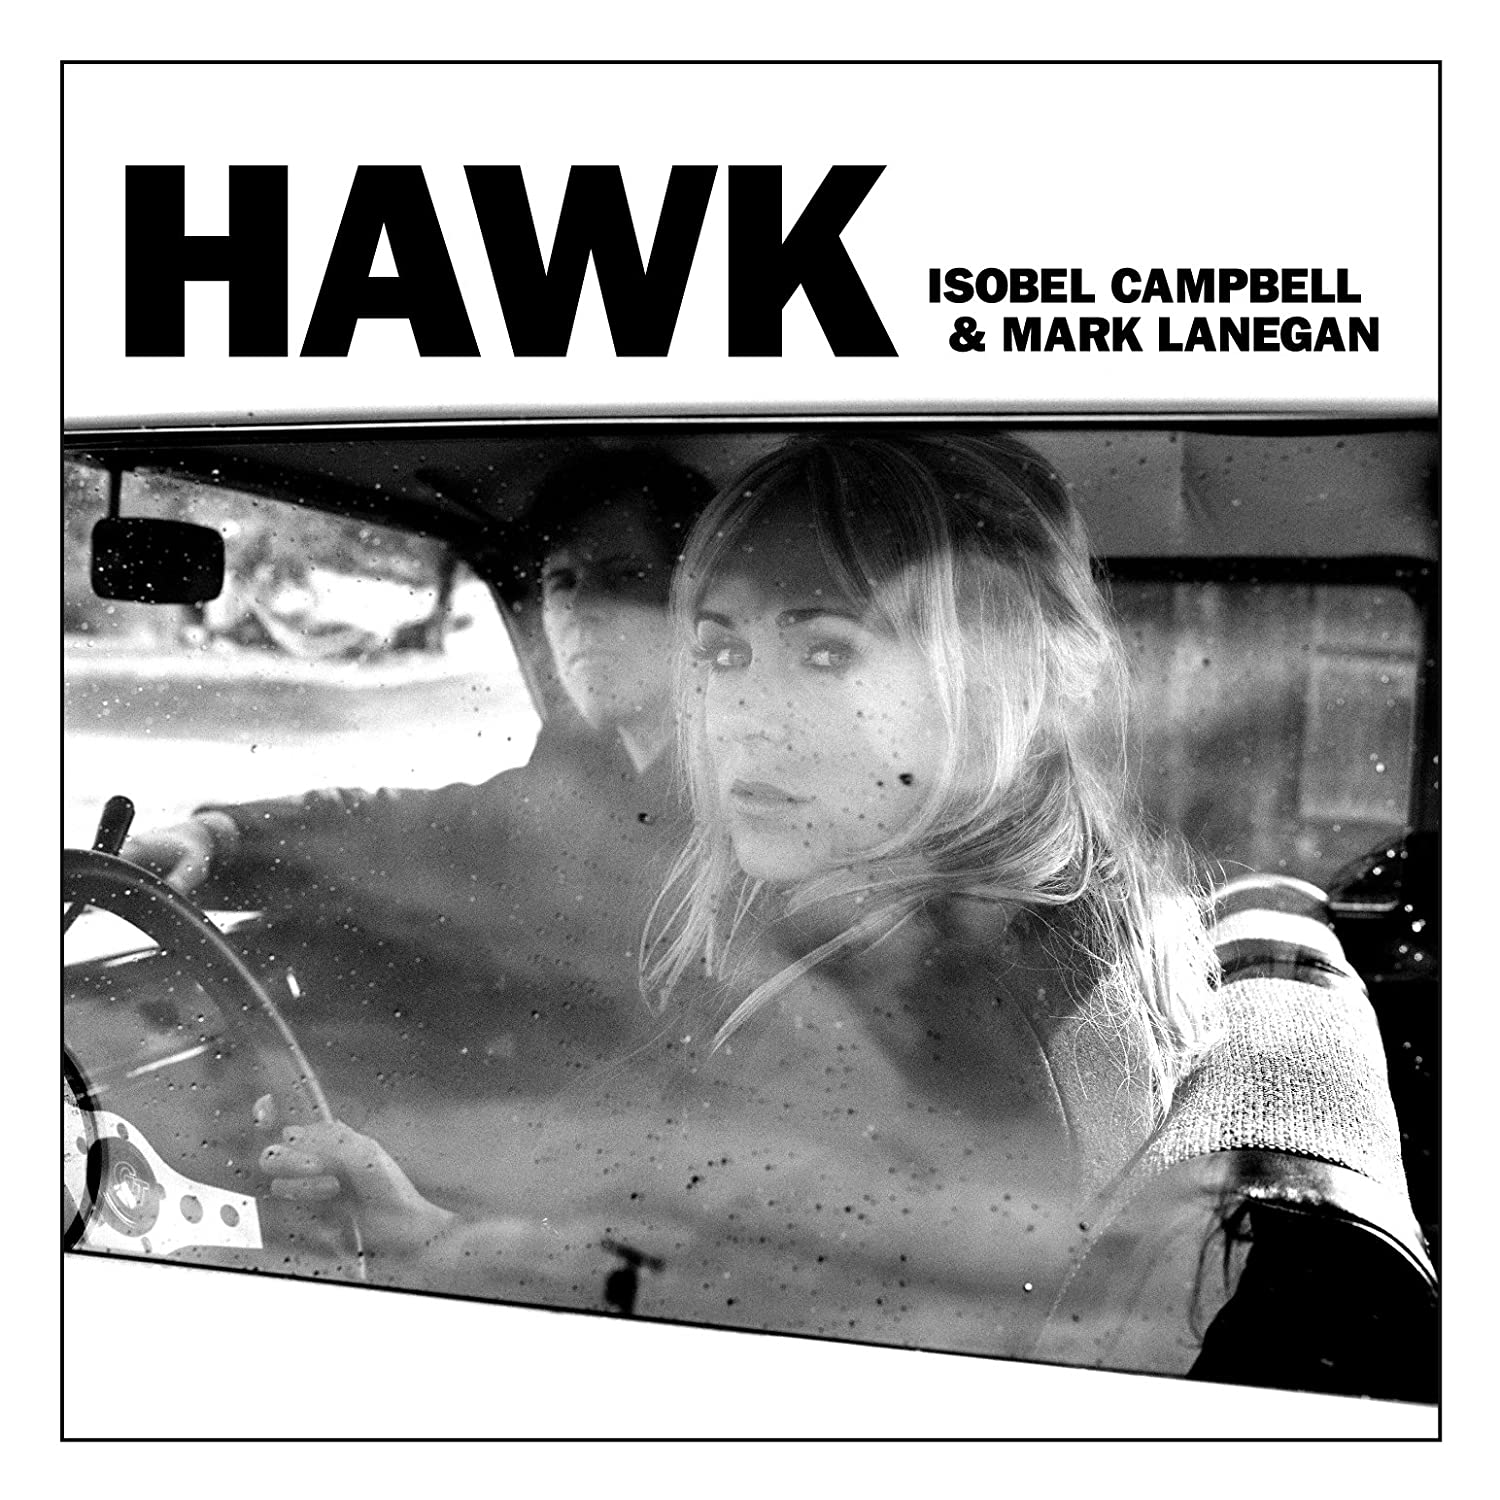 Isobel Campbell & Mark Lanegan, Hawk